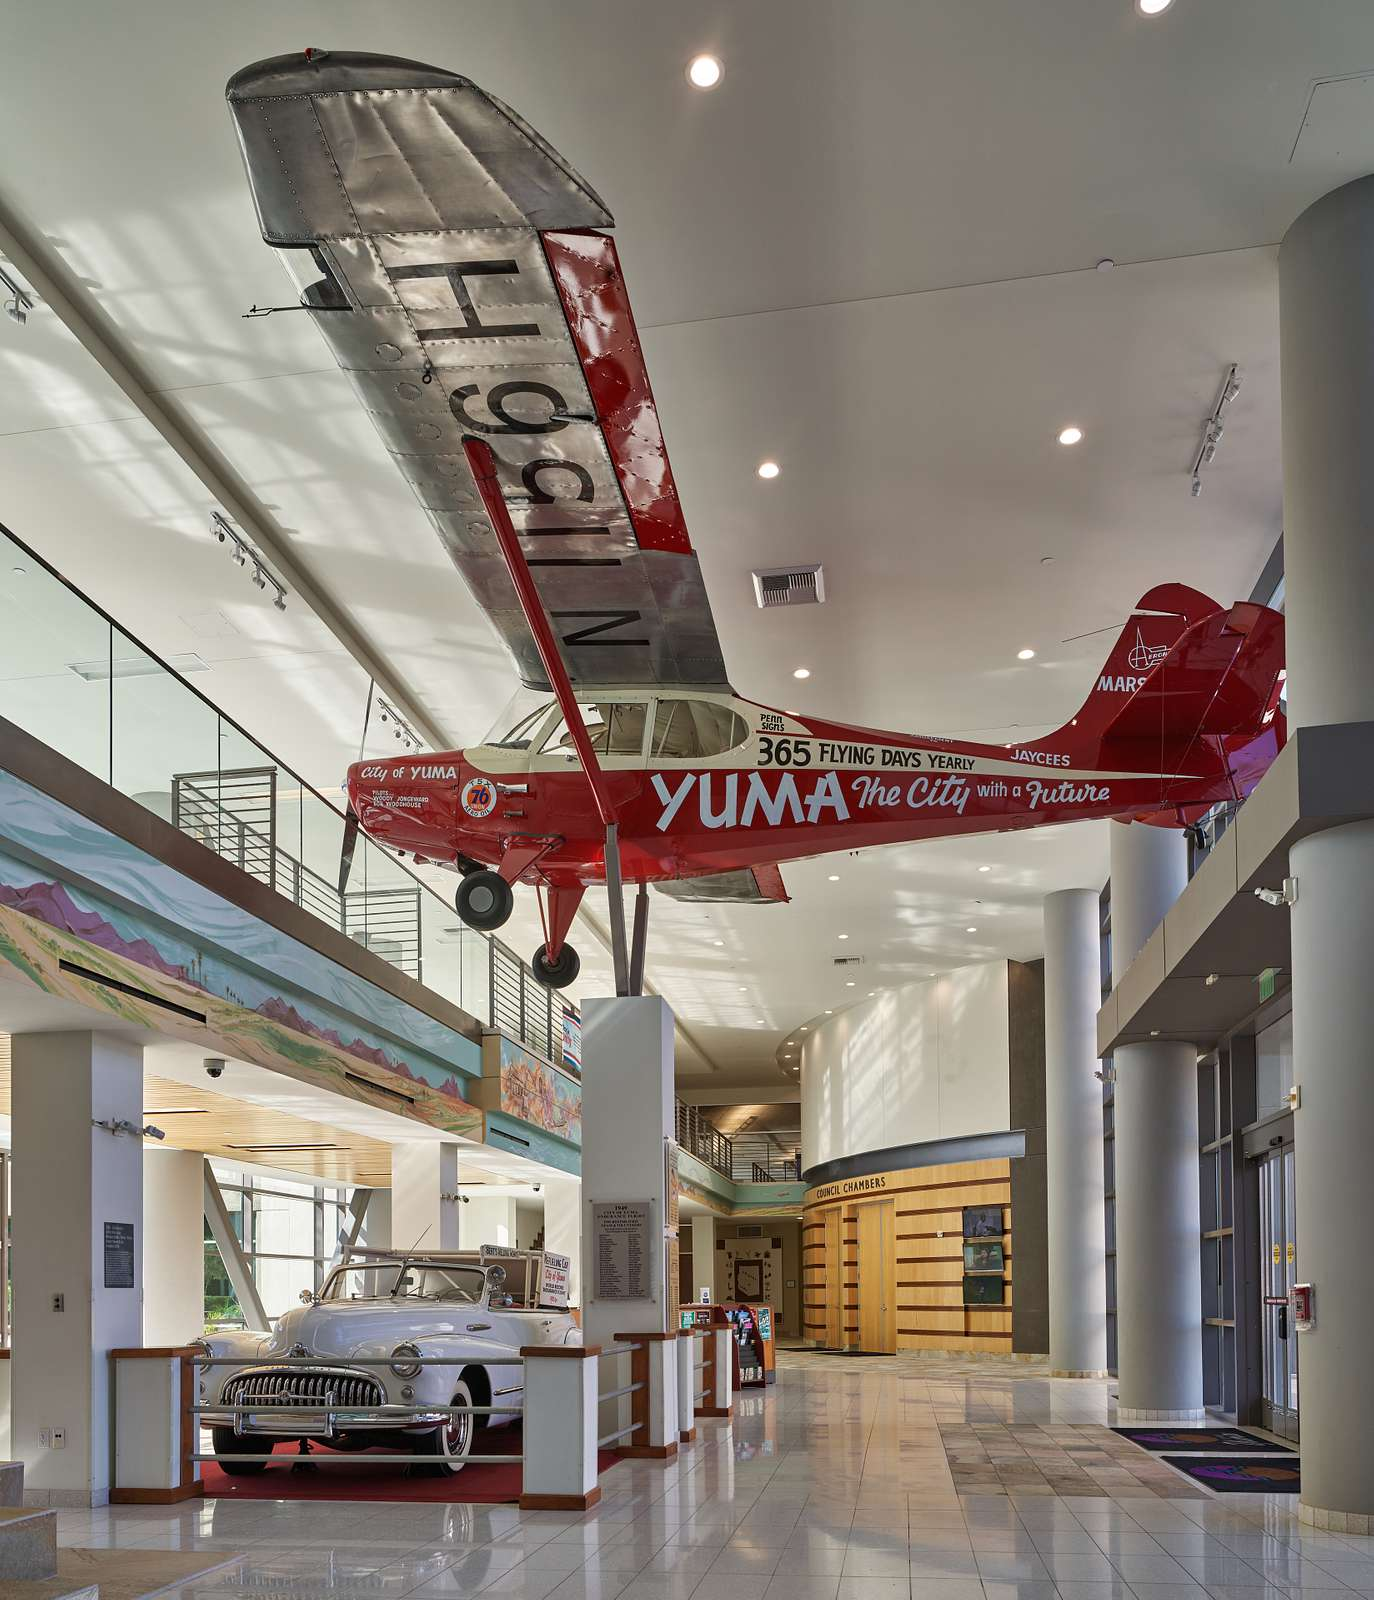 This single-engine plane and the adjacent 1948 Buick automobile, displayed in Yuma, Arizona's, city hall, have a history together